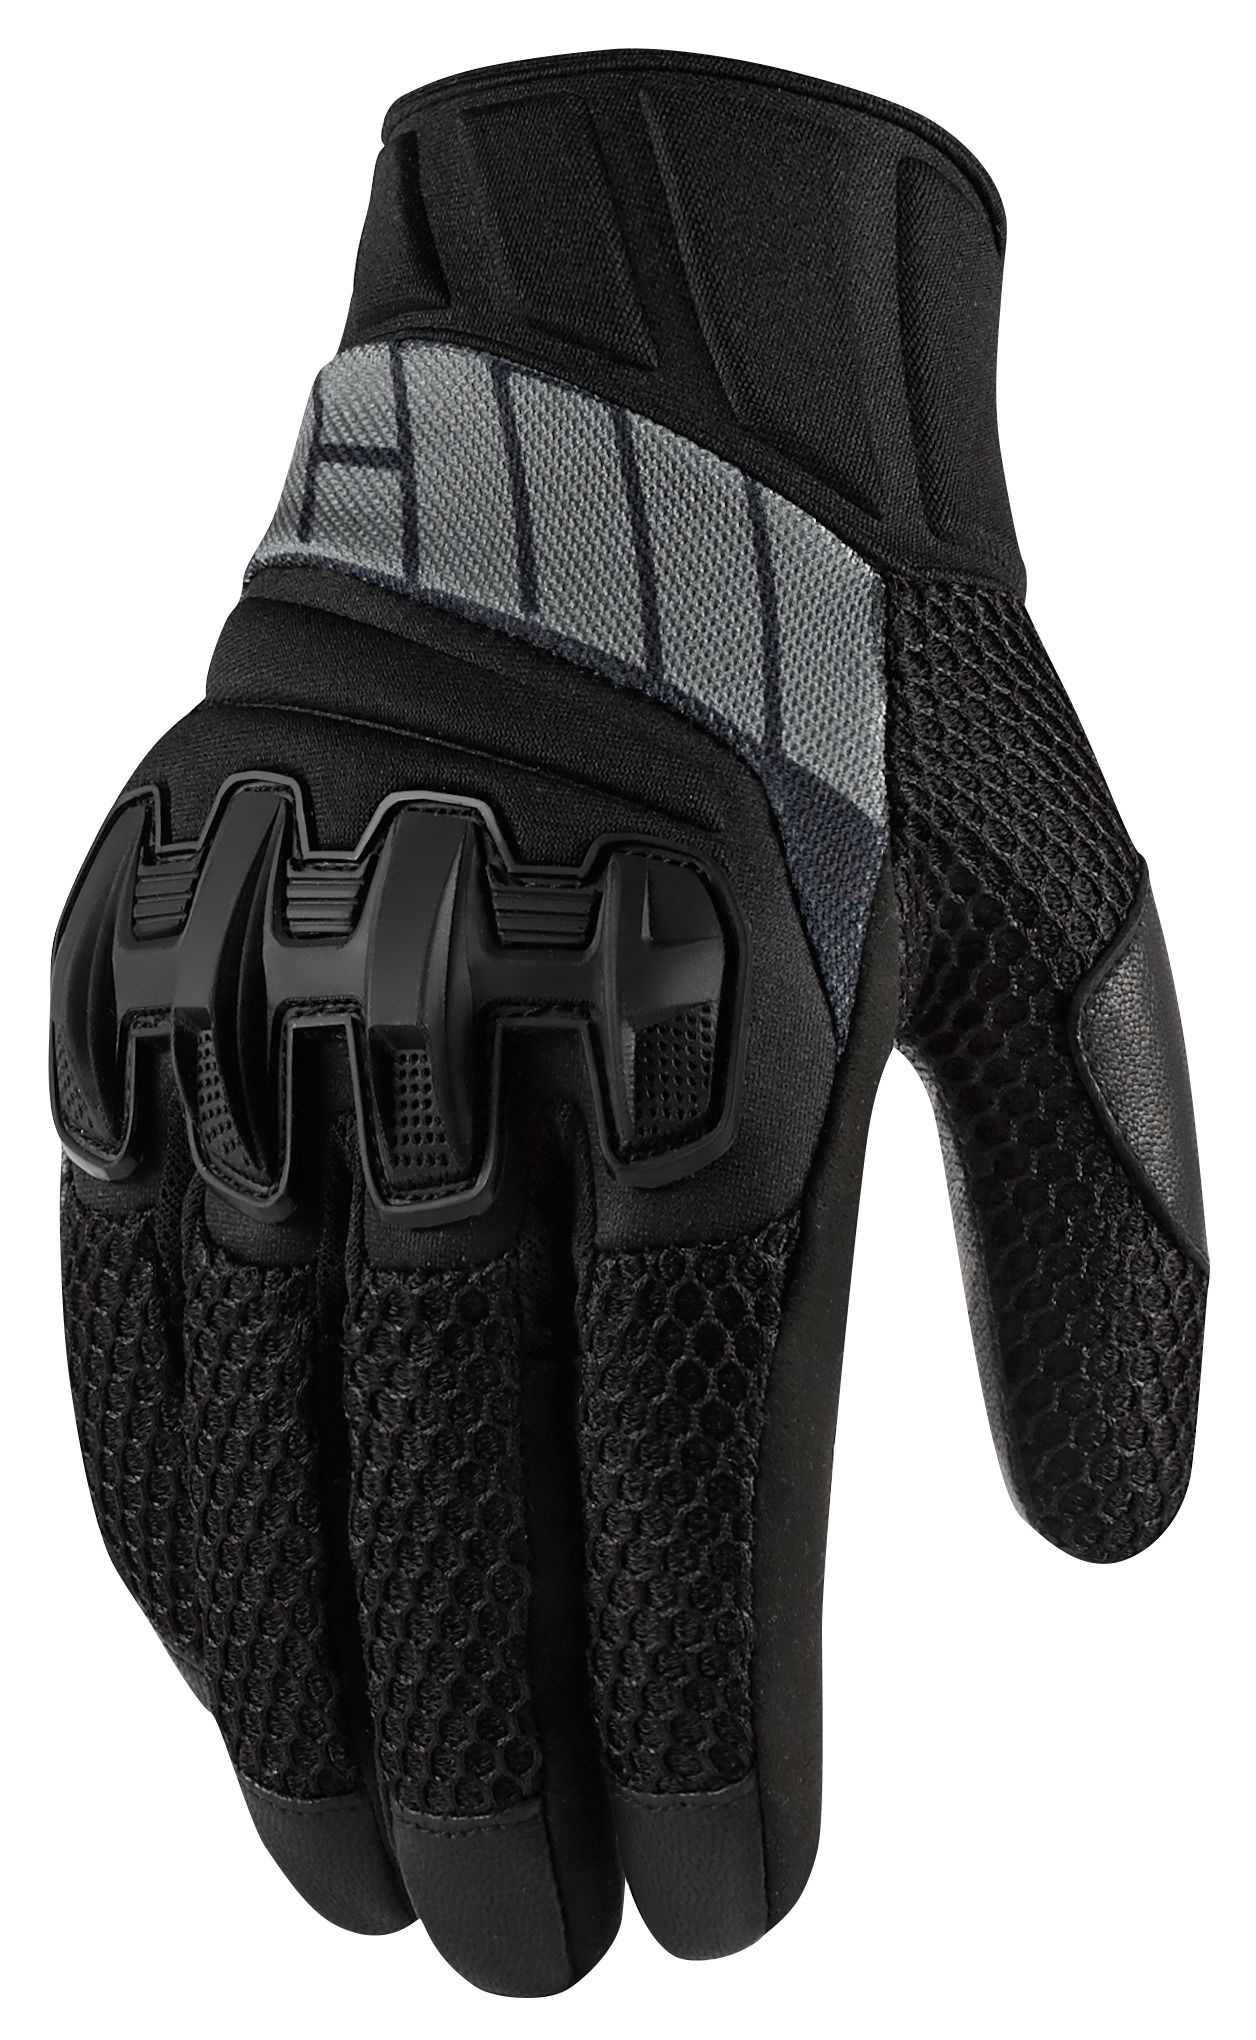 Motorcycle gloves mesh - Motorcycle Gloves Mesh 1